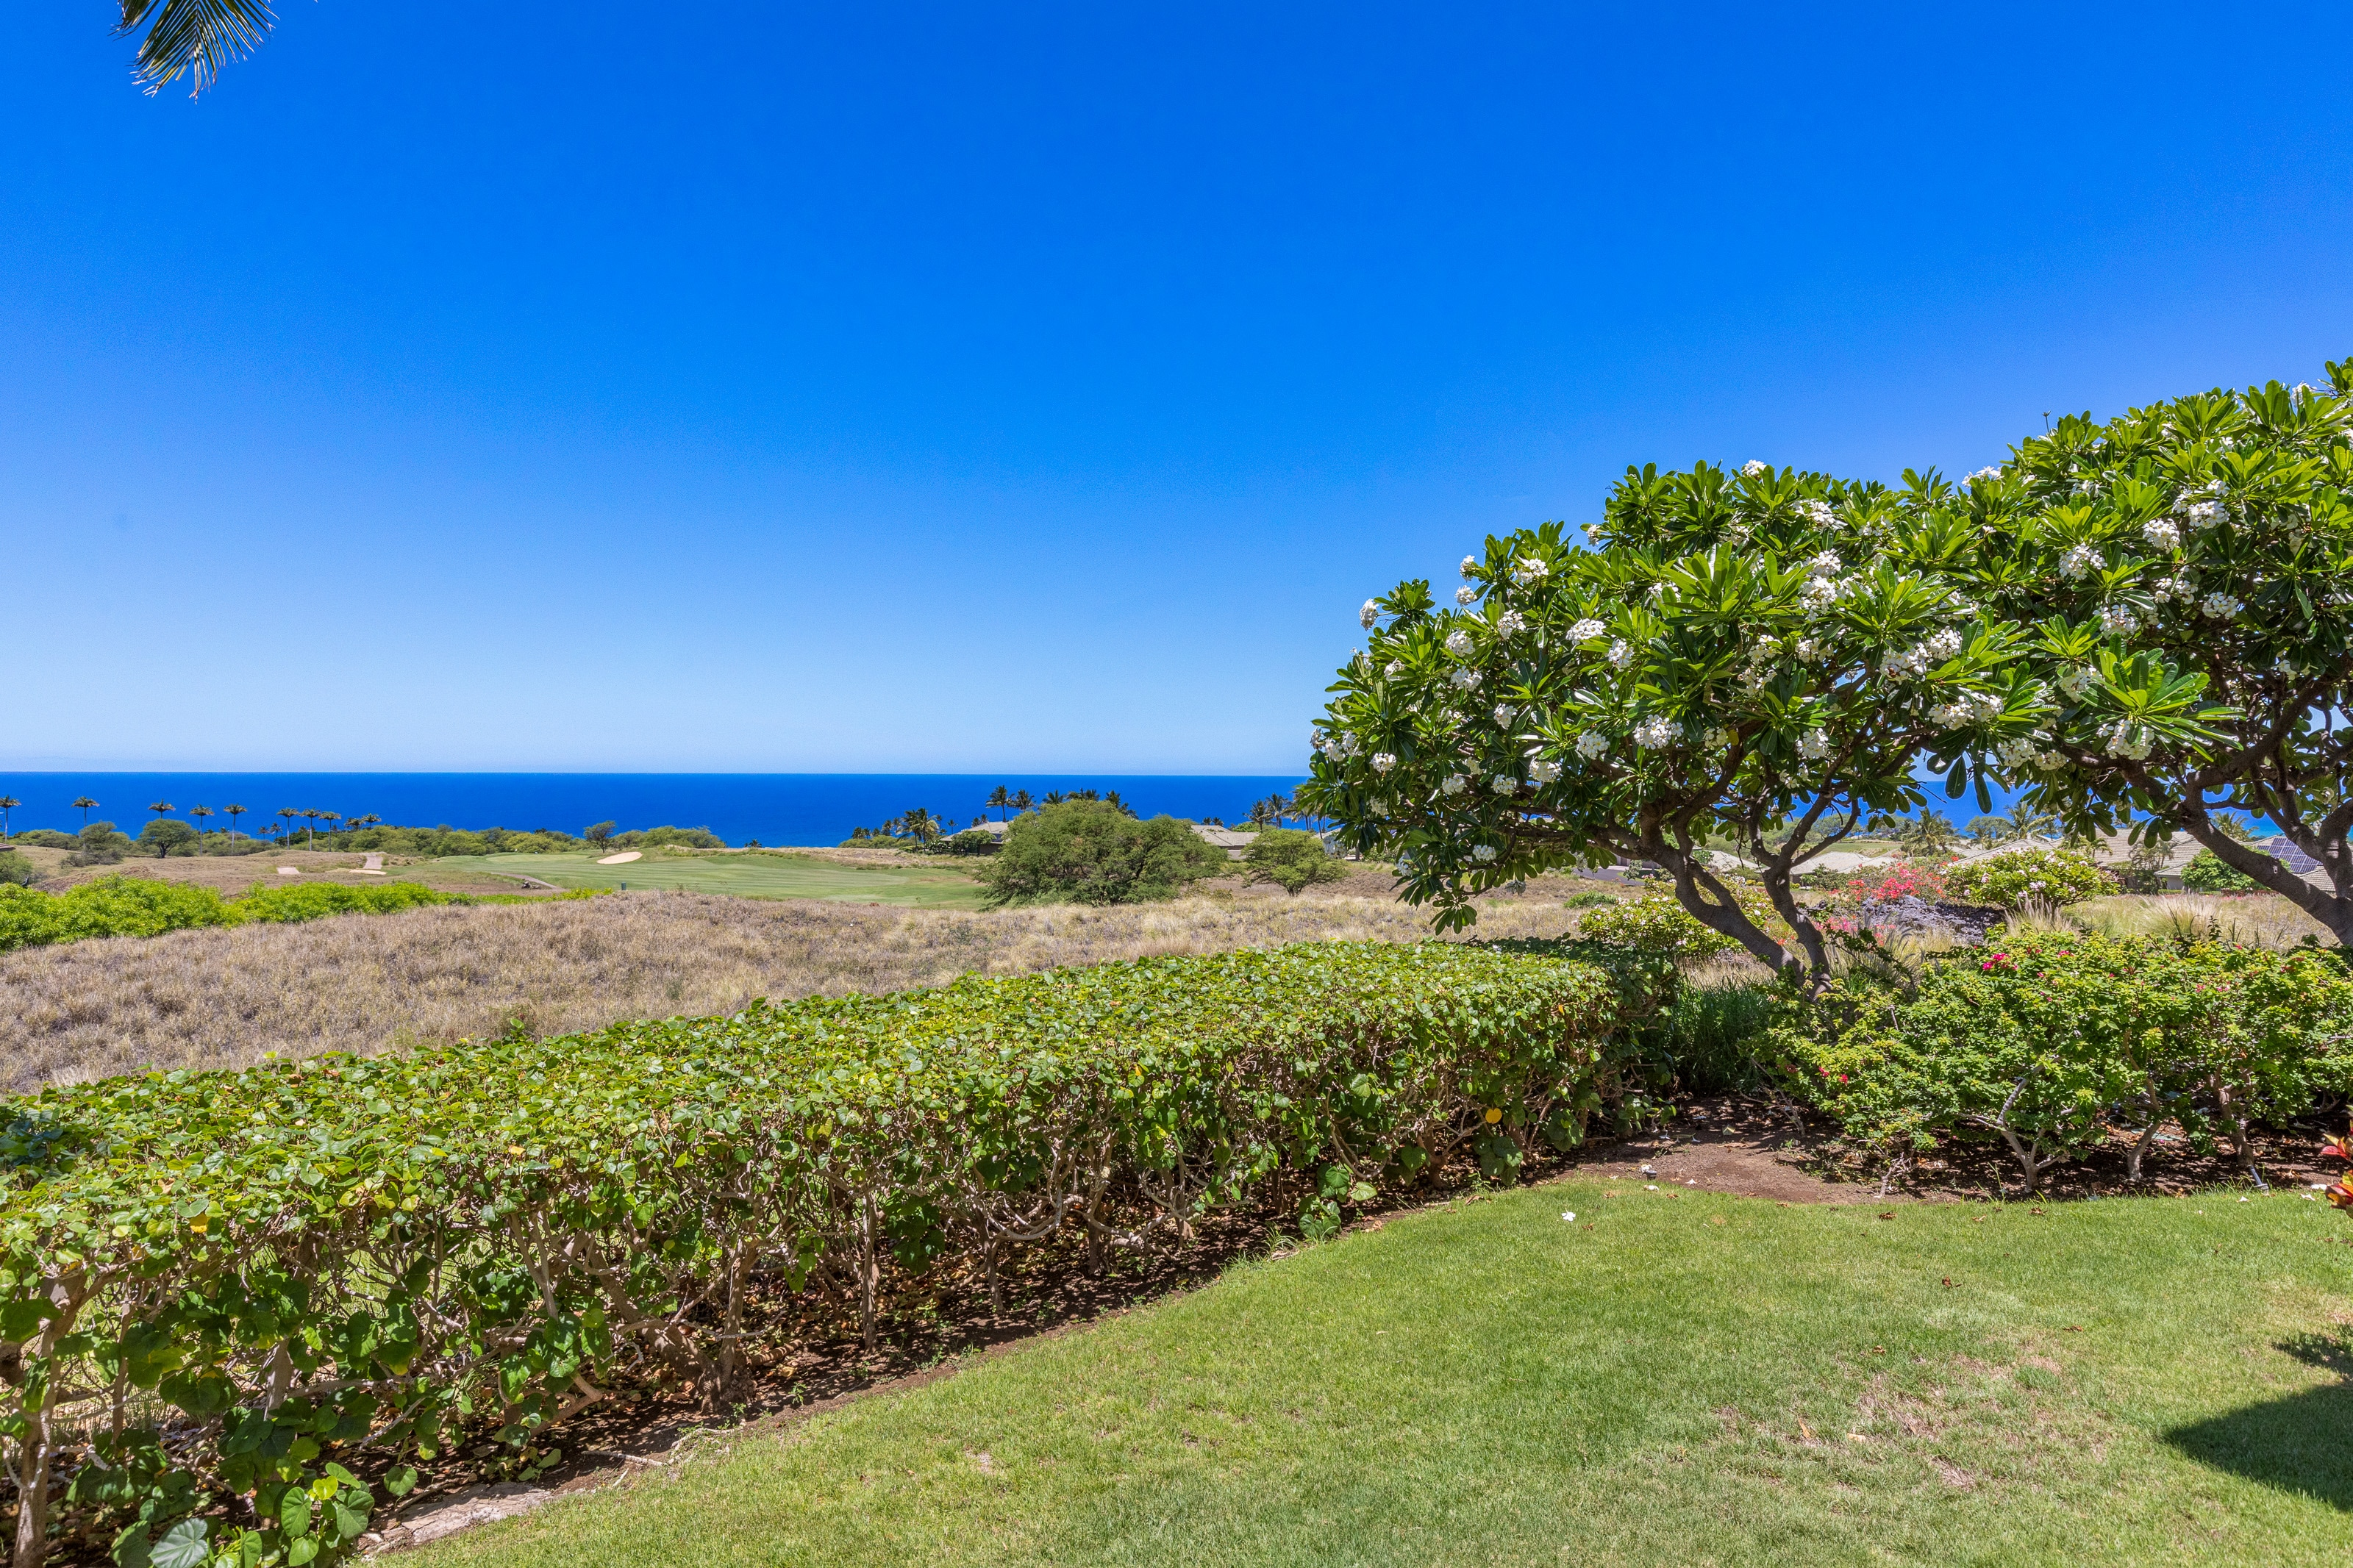 Luxury Condo with Ocean & Golf Views, approx. 1 Mile to Beach